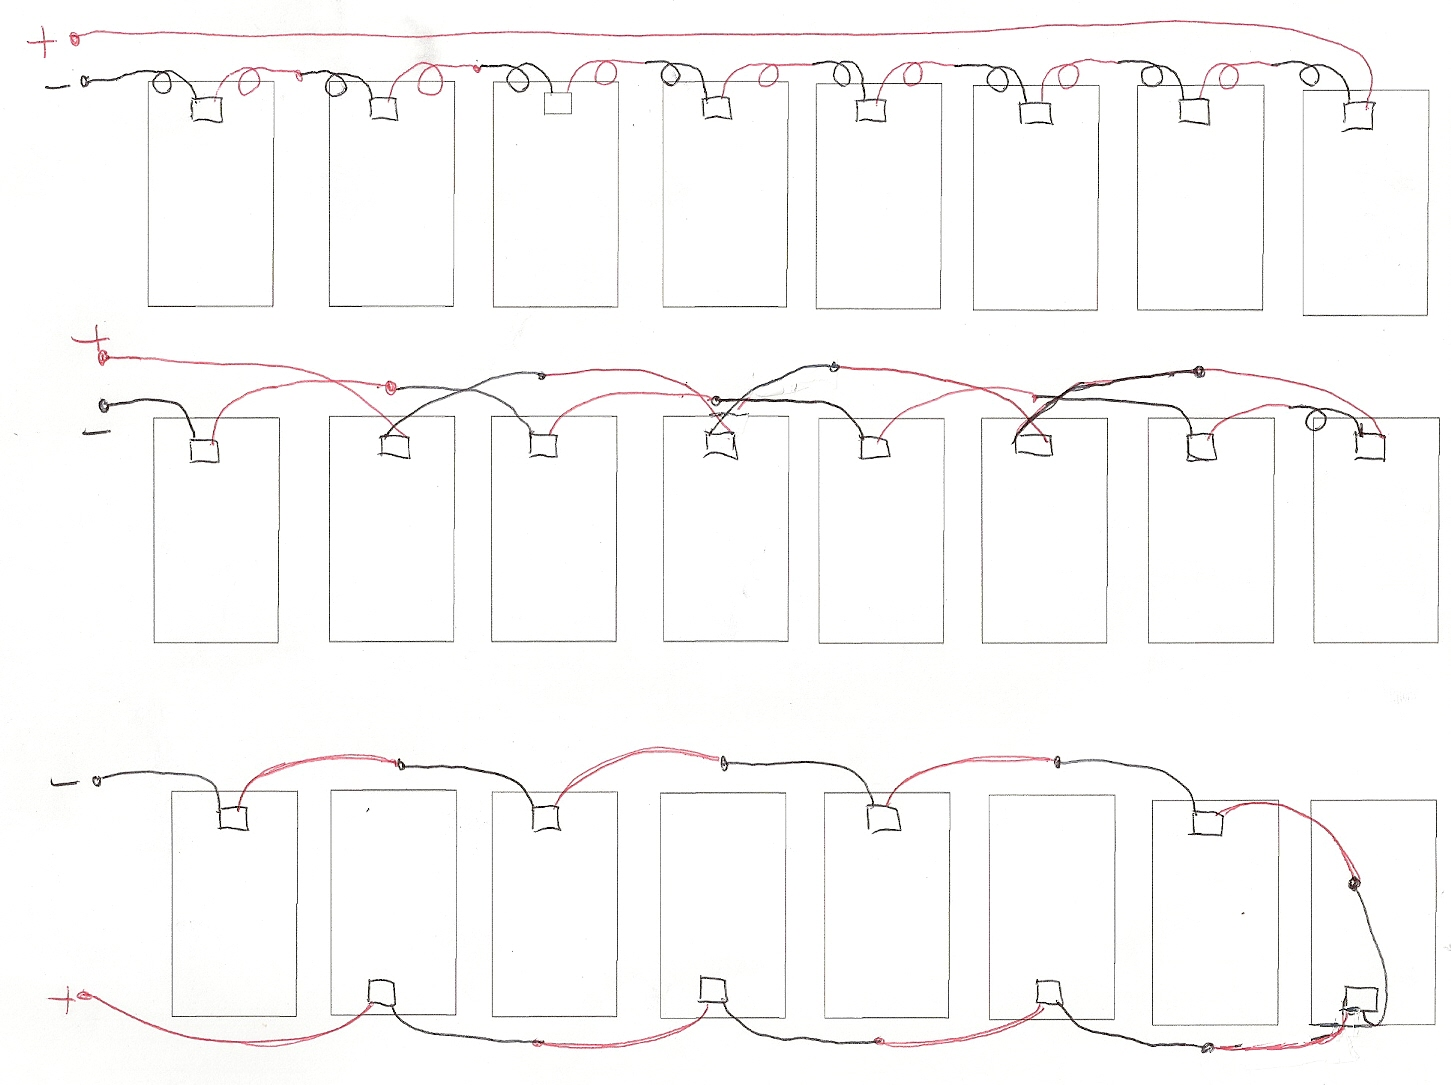 pv array wiring diagram cat5e a or b string 16 images